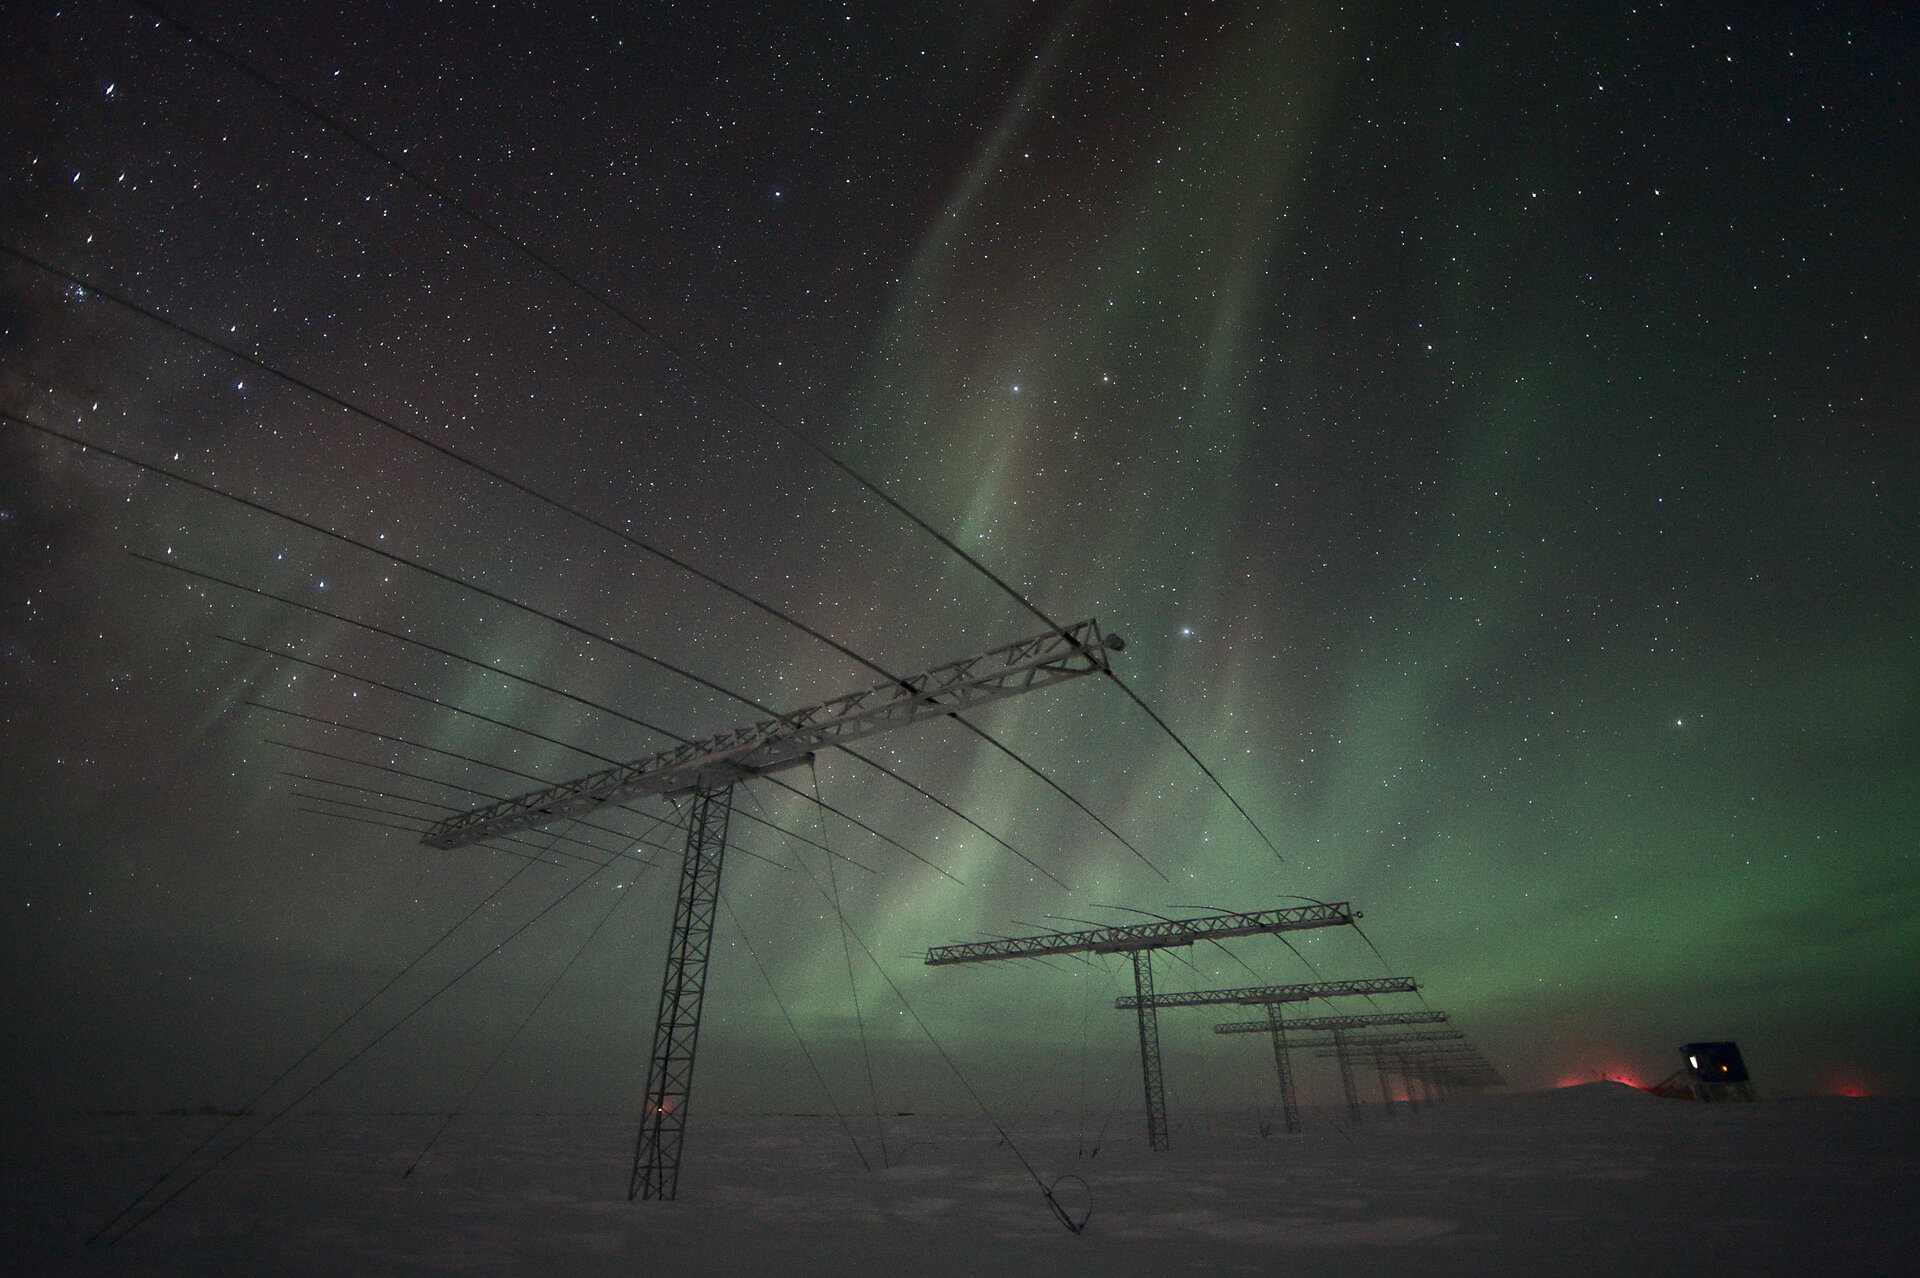 Antennas and auroras